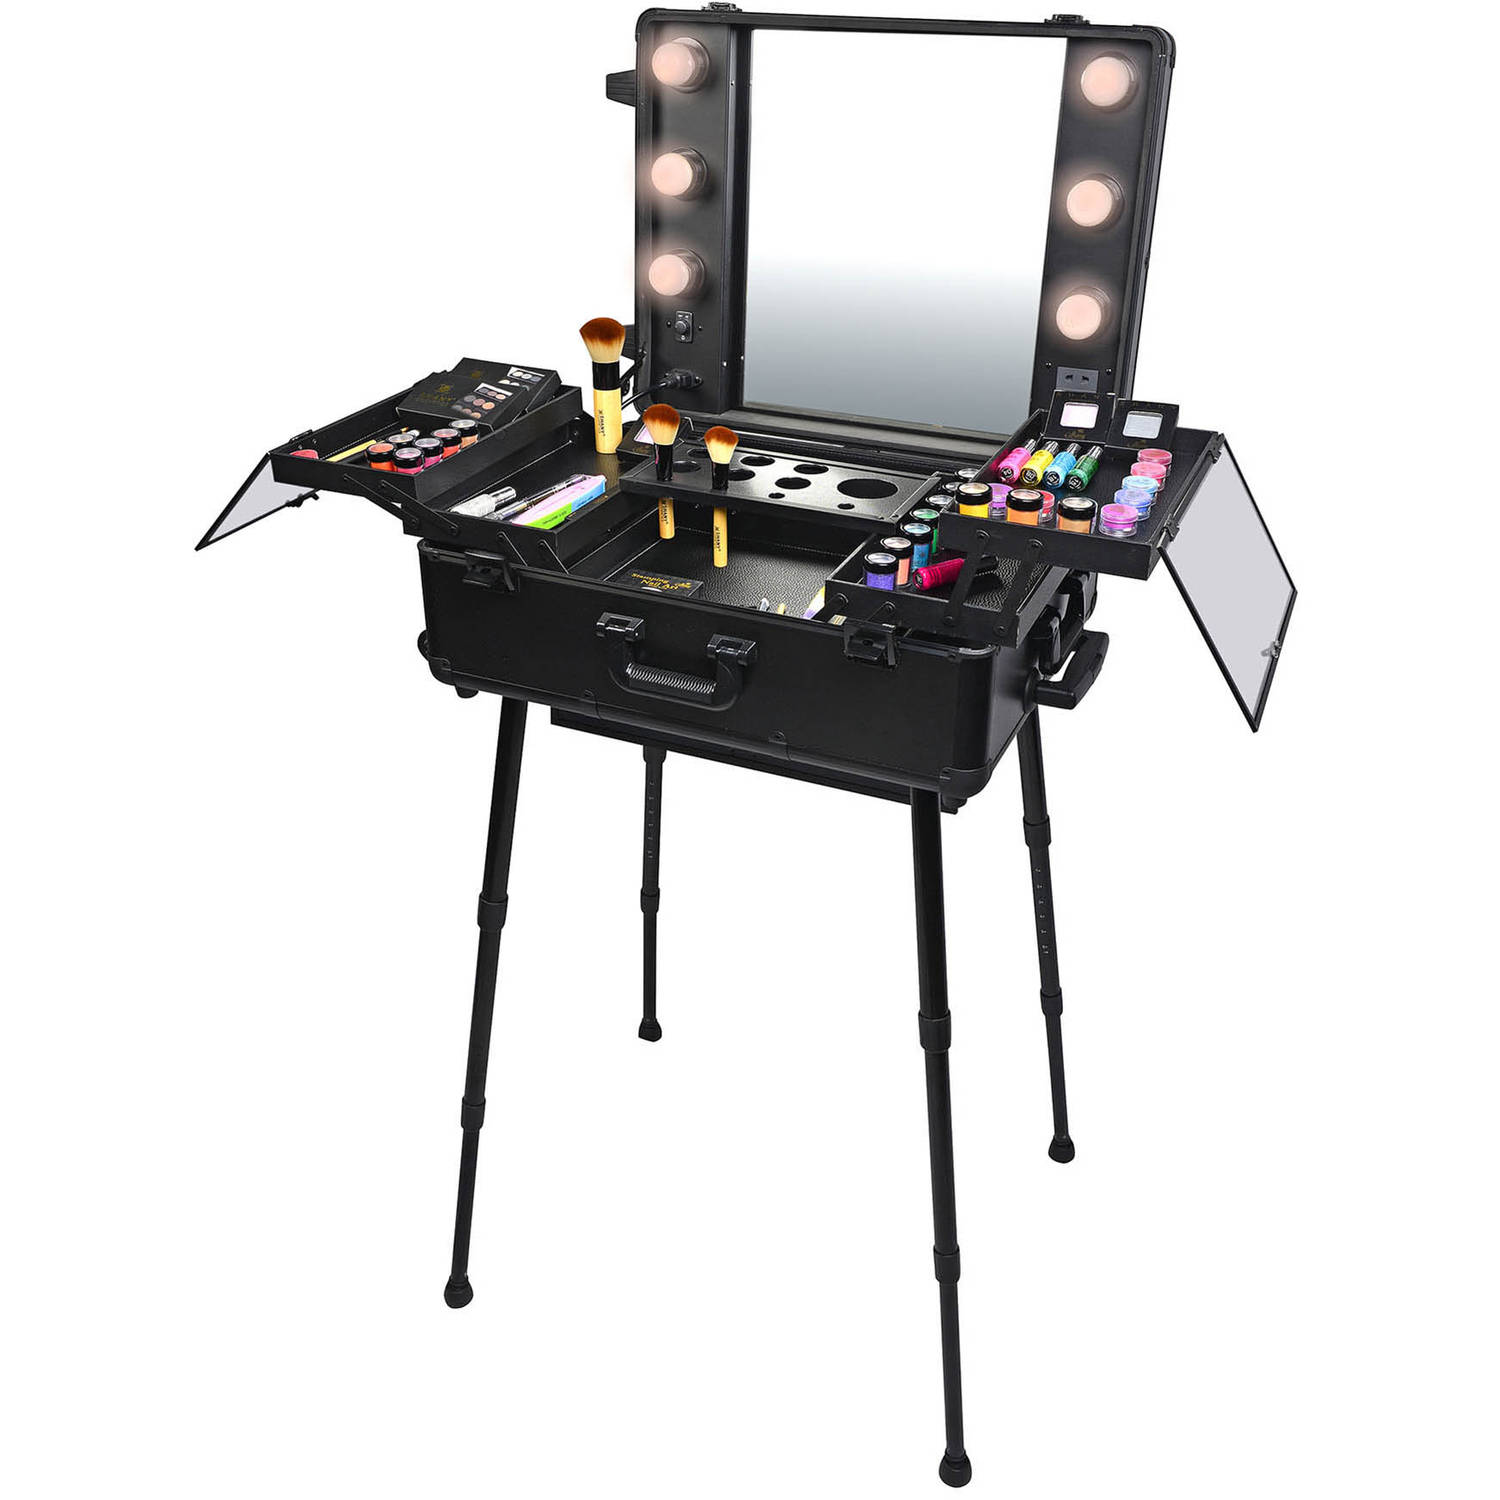 SHANY Cosmetics Studio-to-Go Wheeled Trolley Makeup Case & Organizer with Light